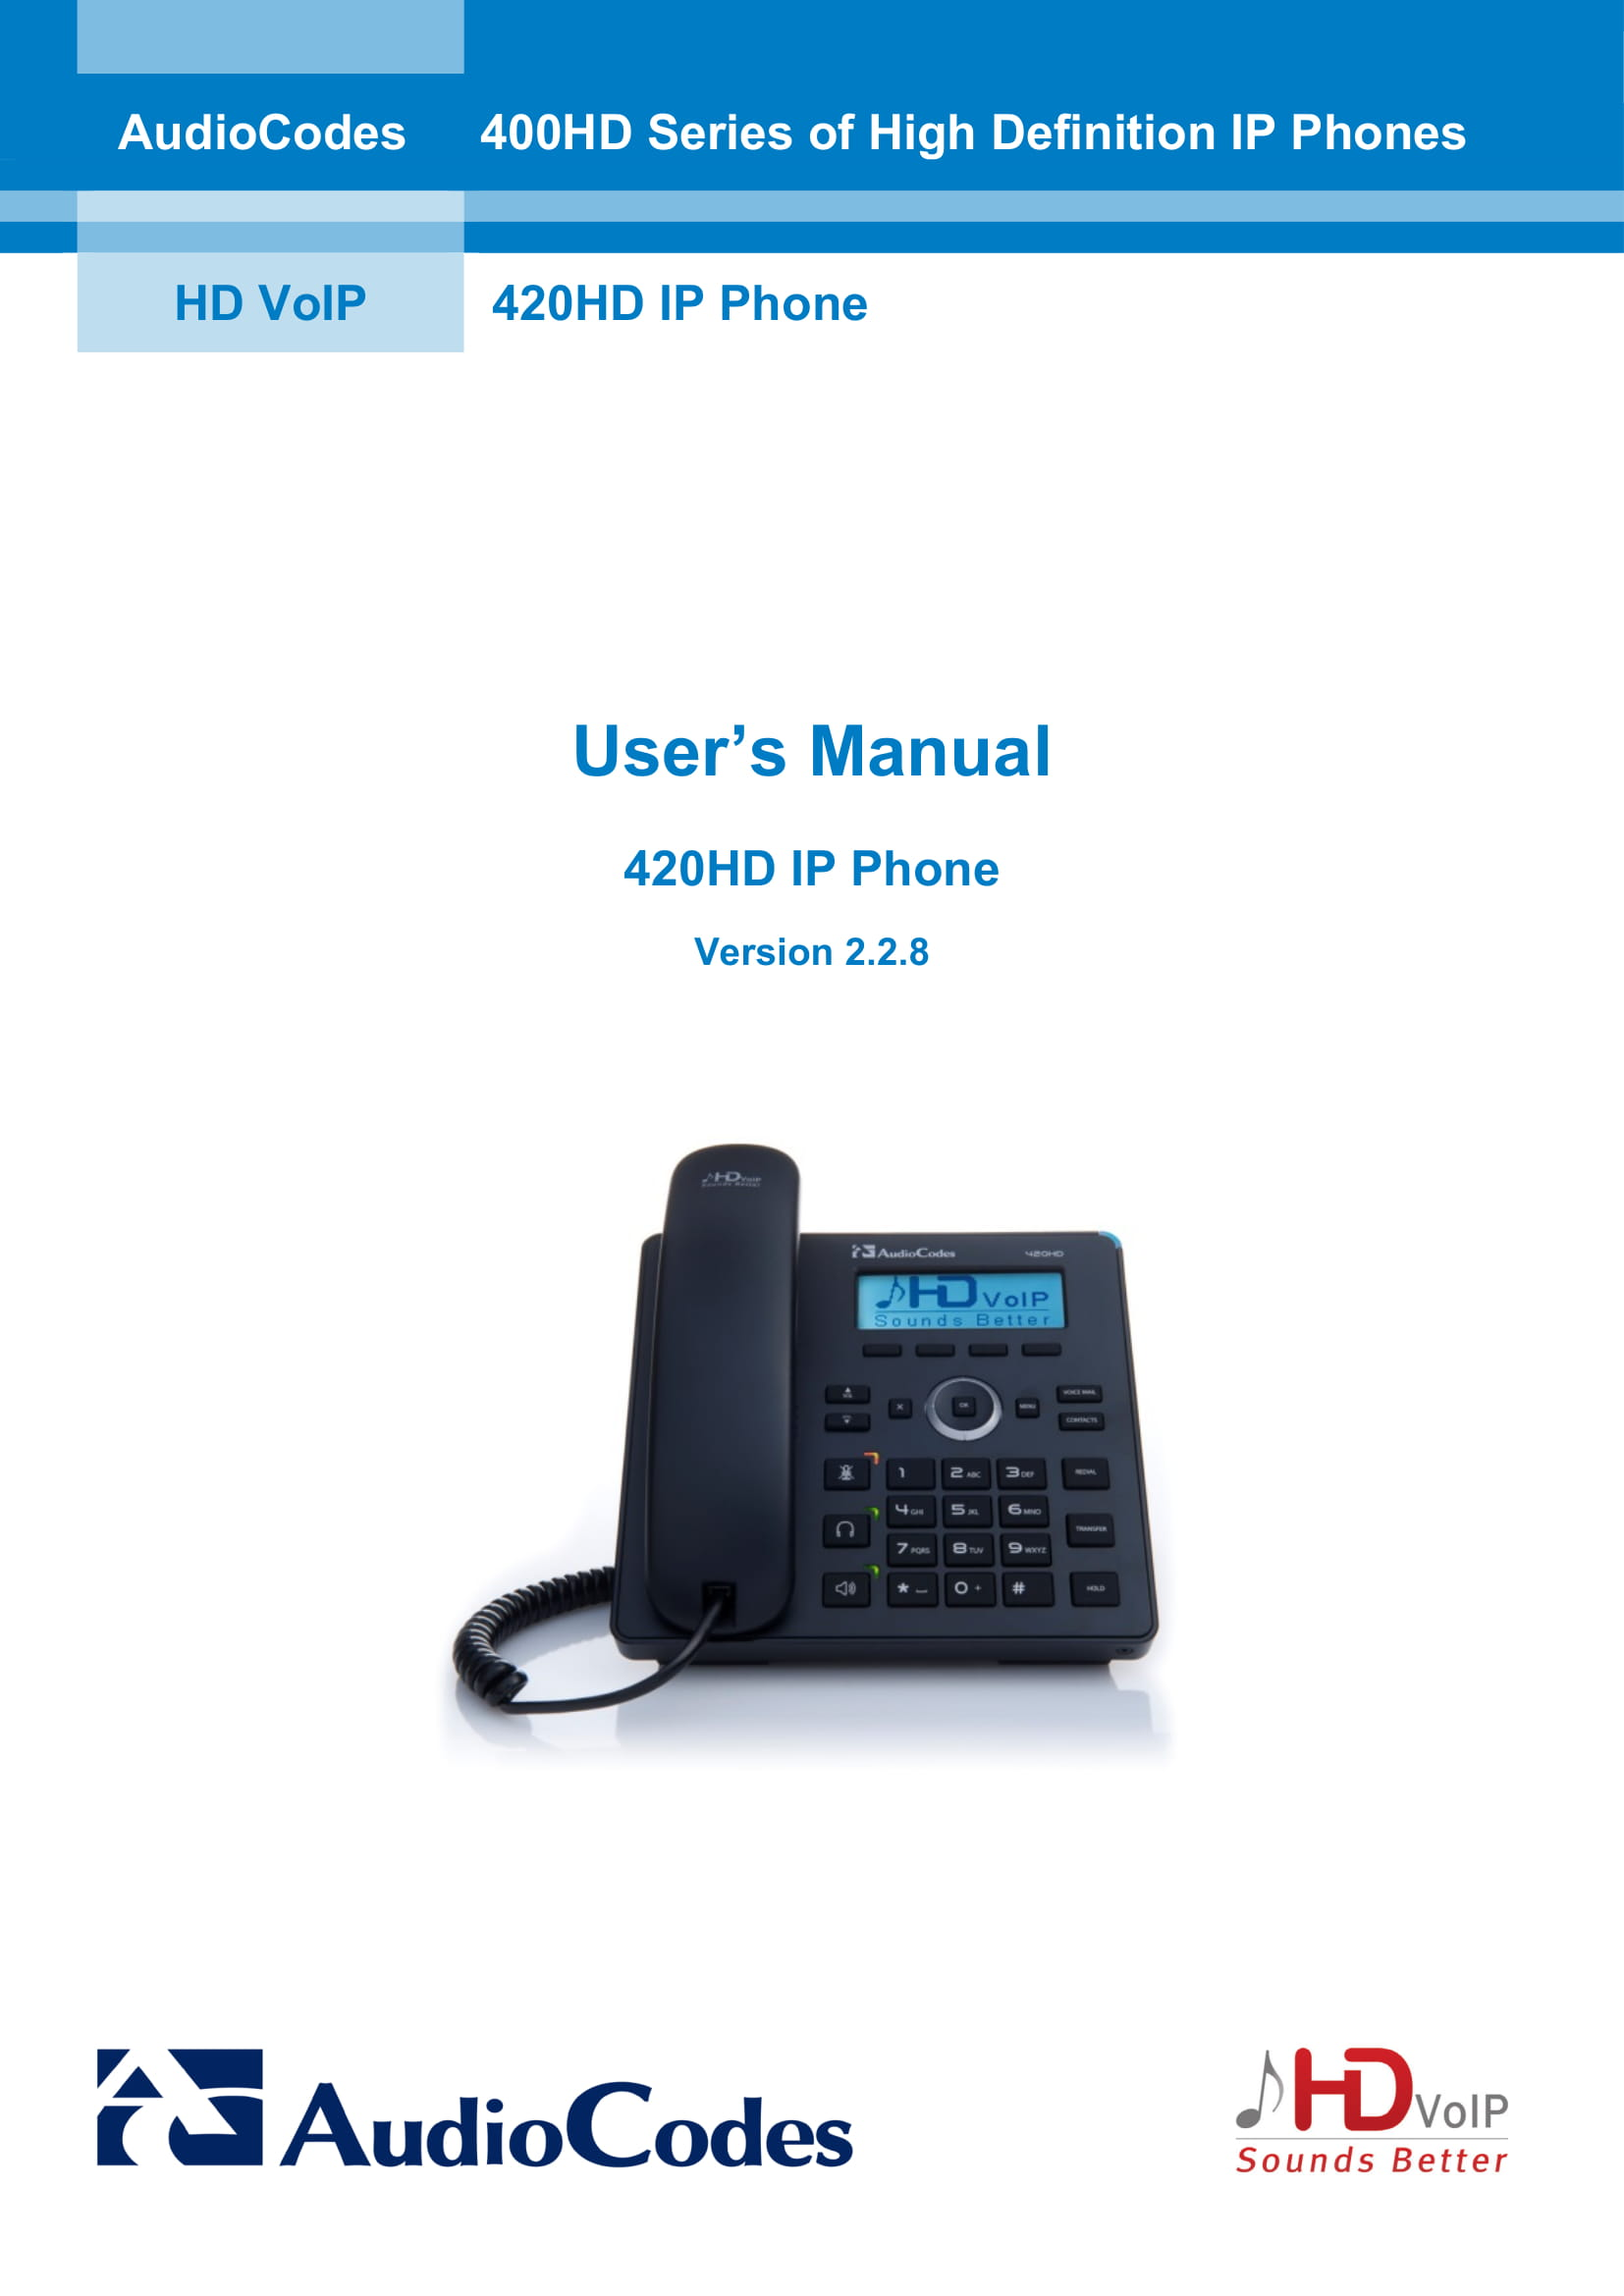 phone users manual and call log or history guide example 01